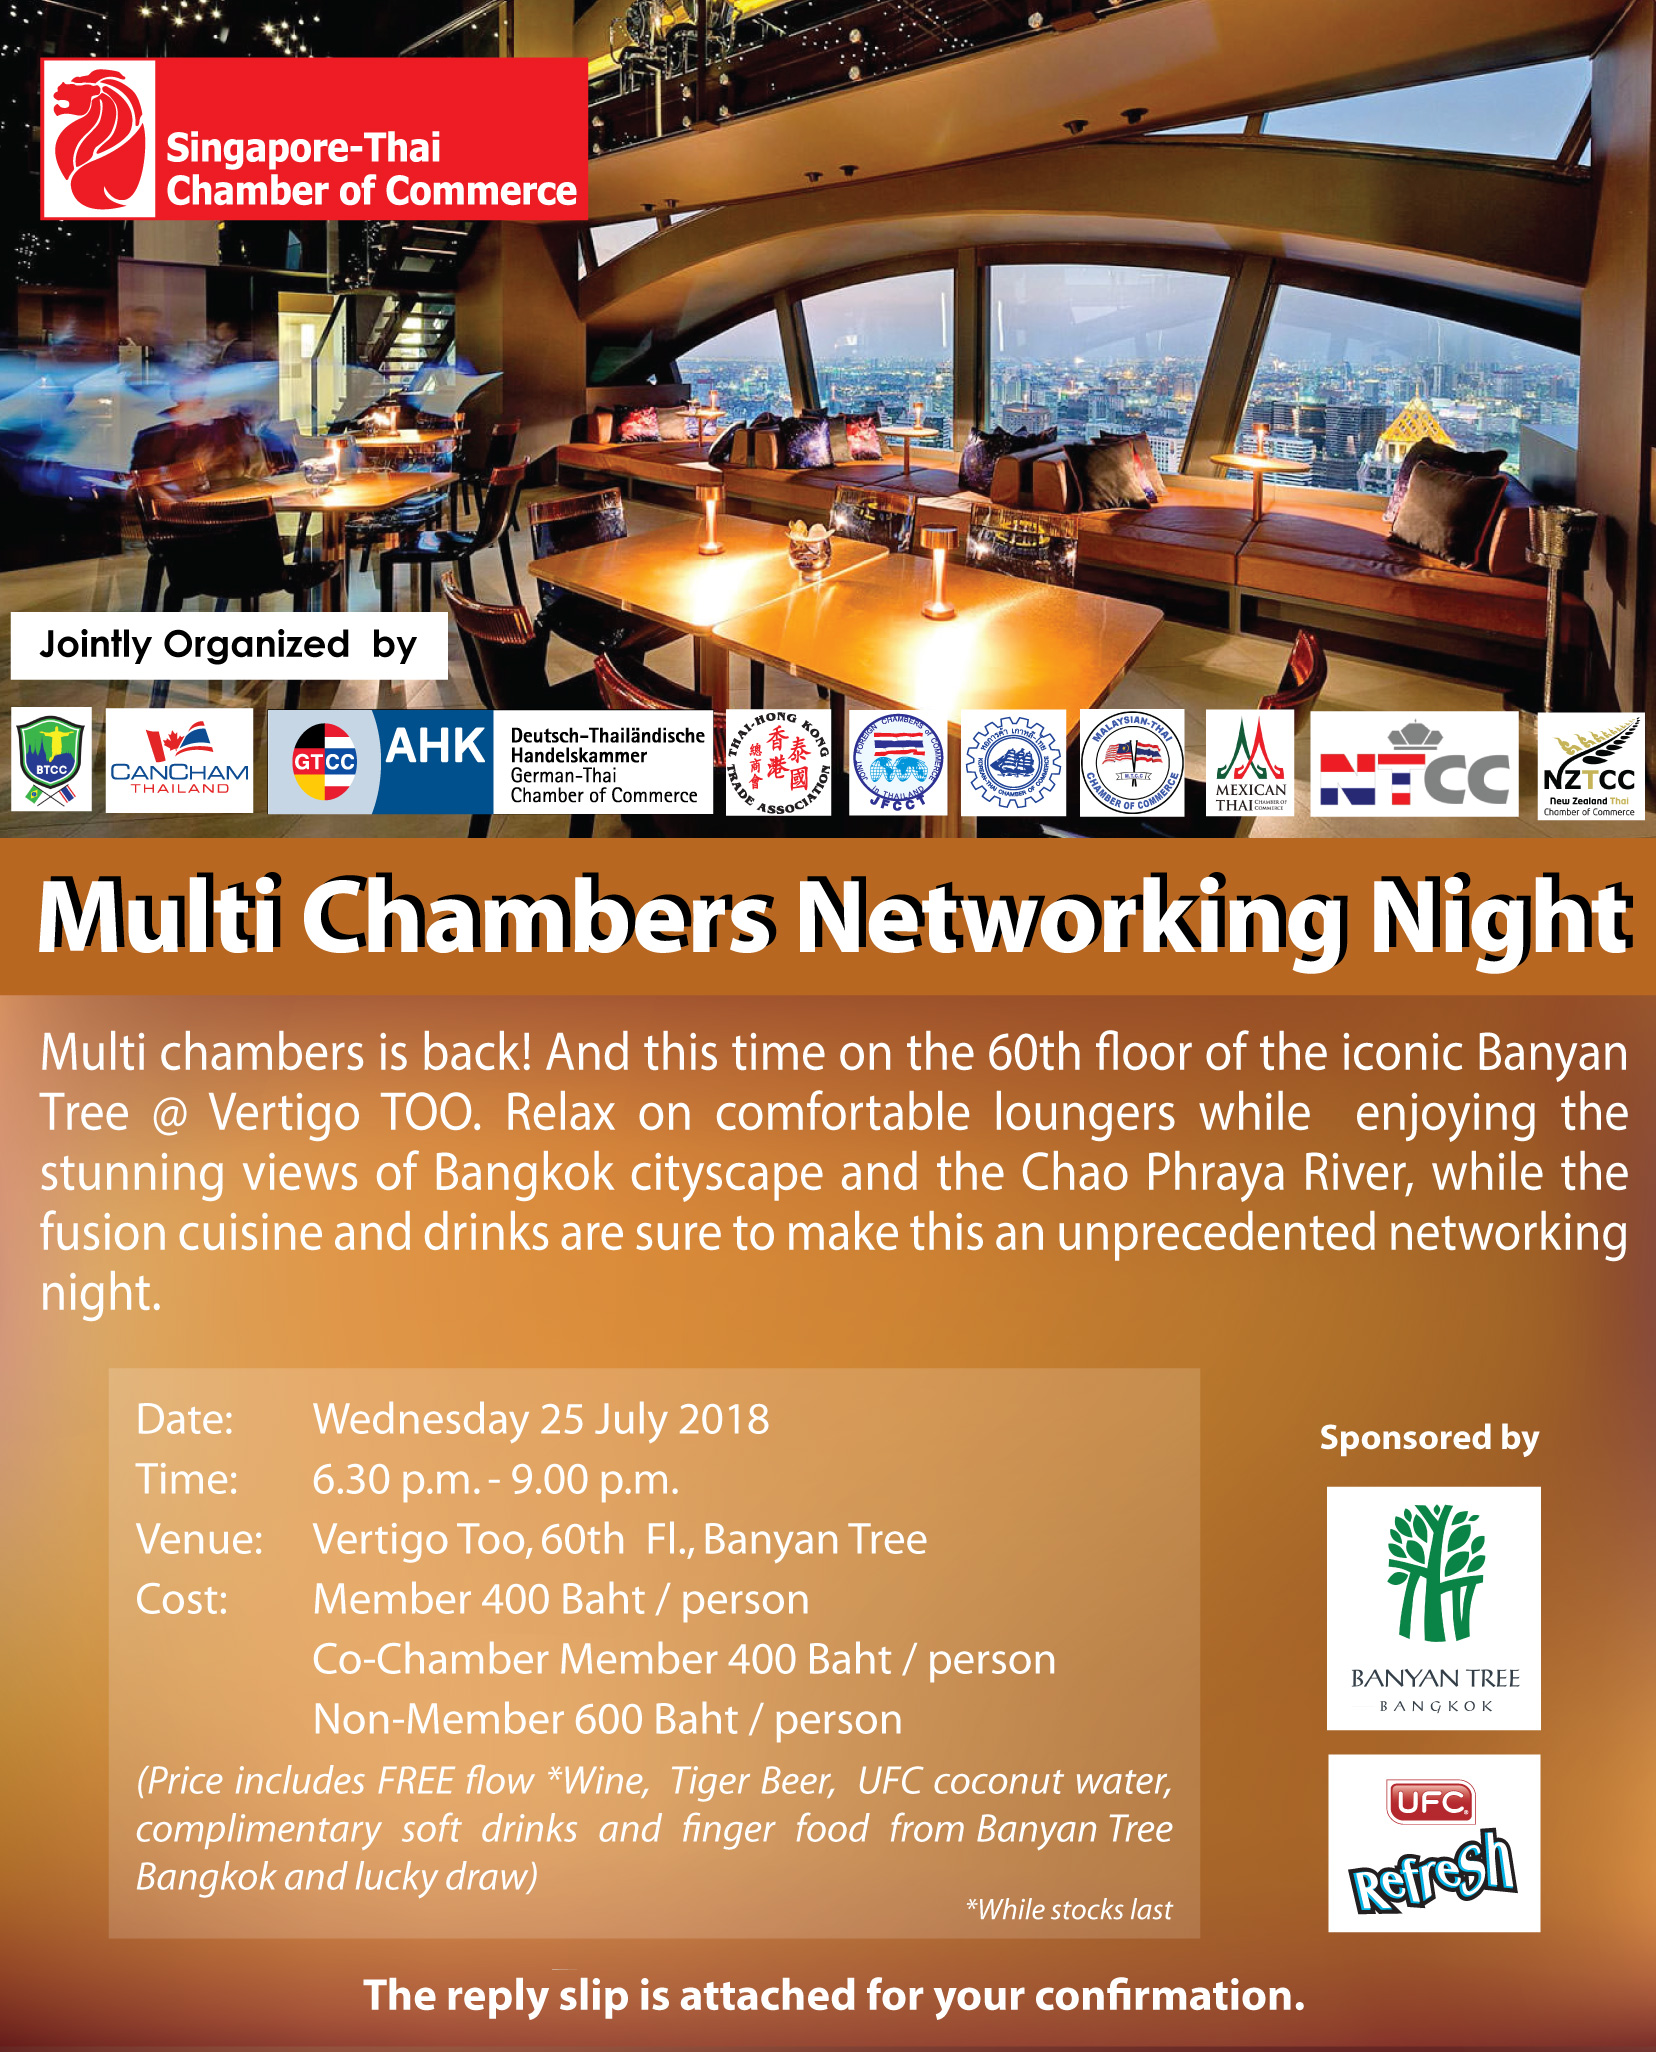 Multi-Chambers-Networking-Night_Banyan-Tree_25Jul2018.jpg